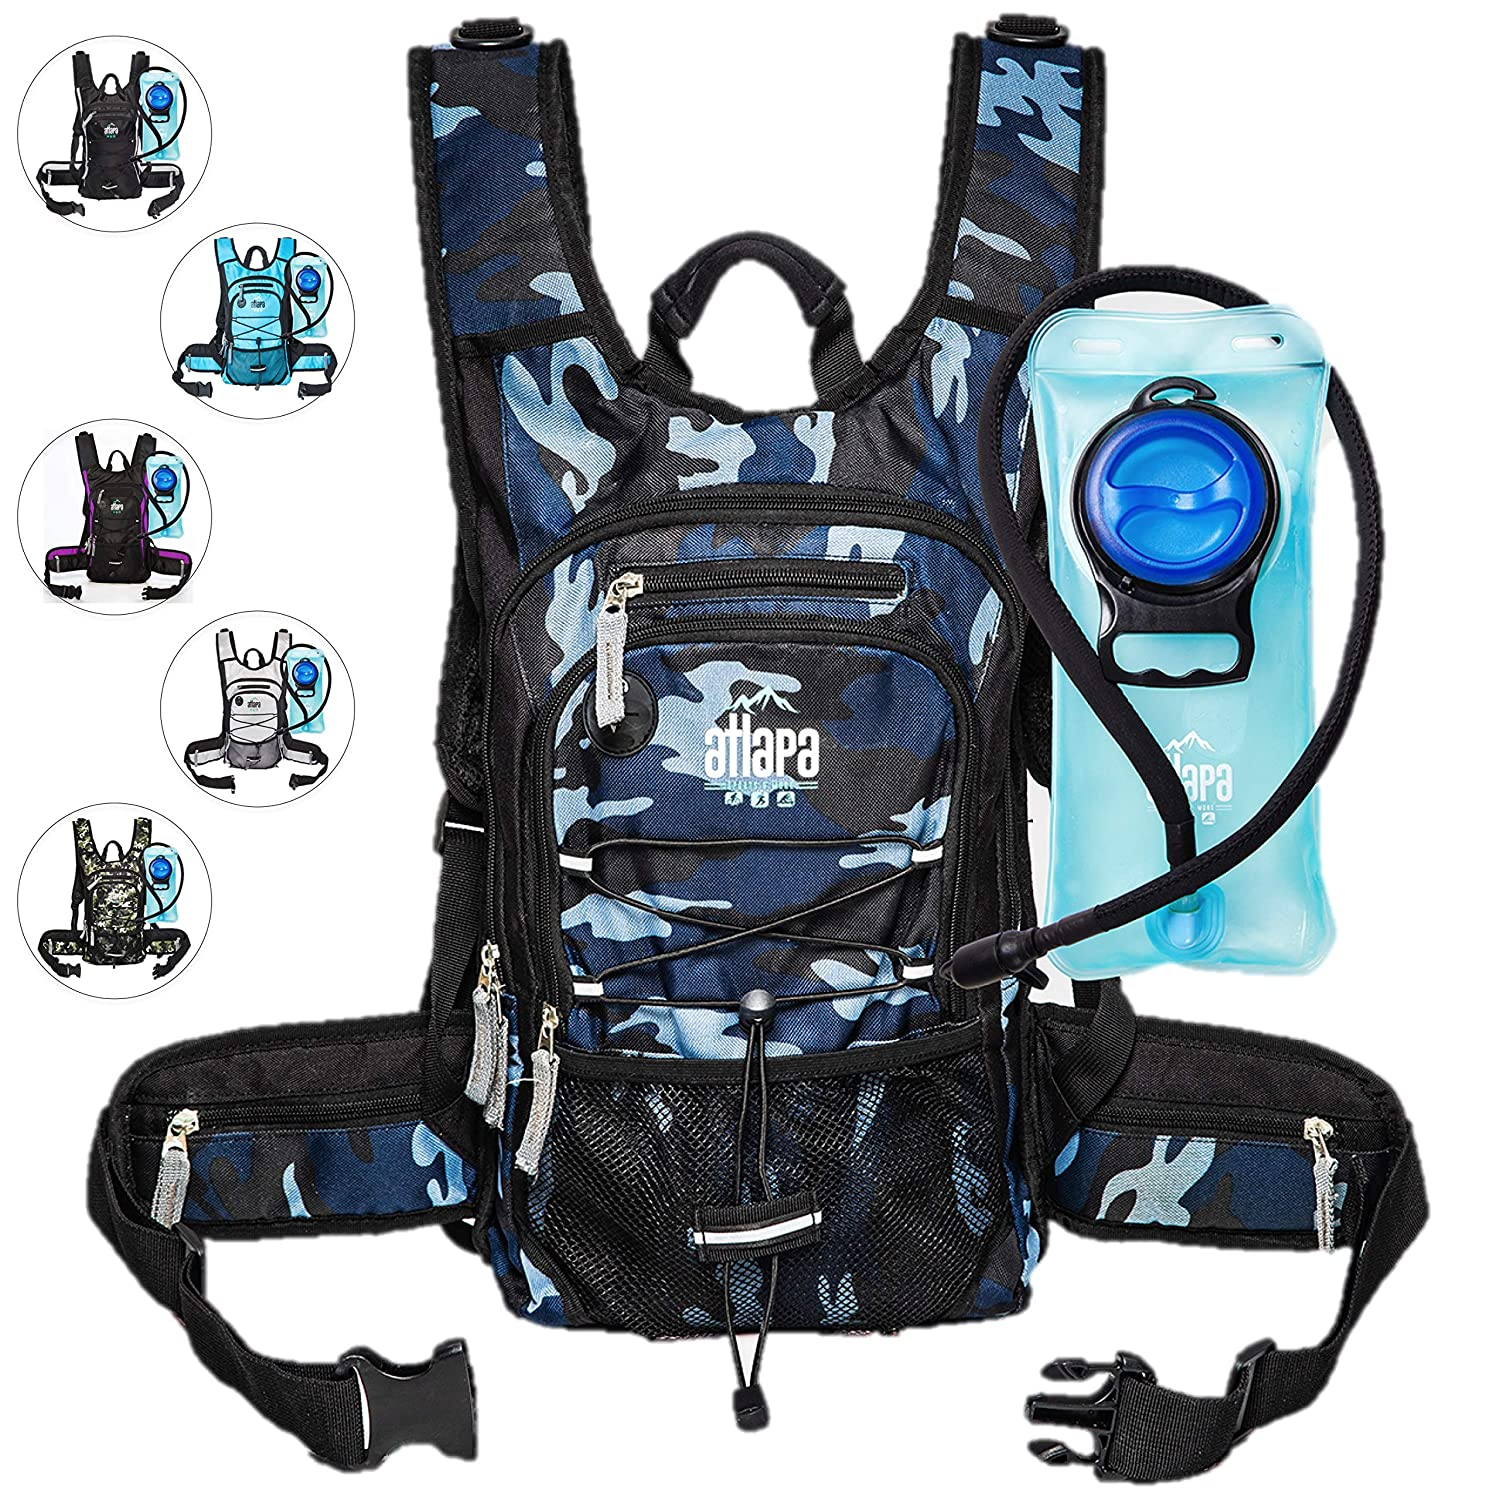 Atlapa Sports Lightweight Hydration Backpack 2L TPU Leak Proof Water Bladder Insulated Pocket Cold Storage Padded Shoulder Adjustable Straps Day Pack Hiking